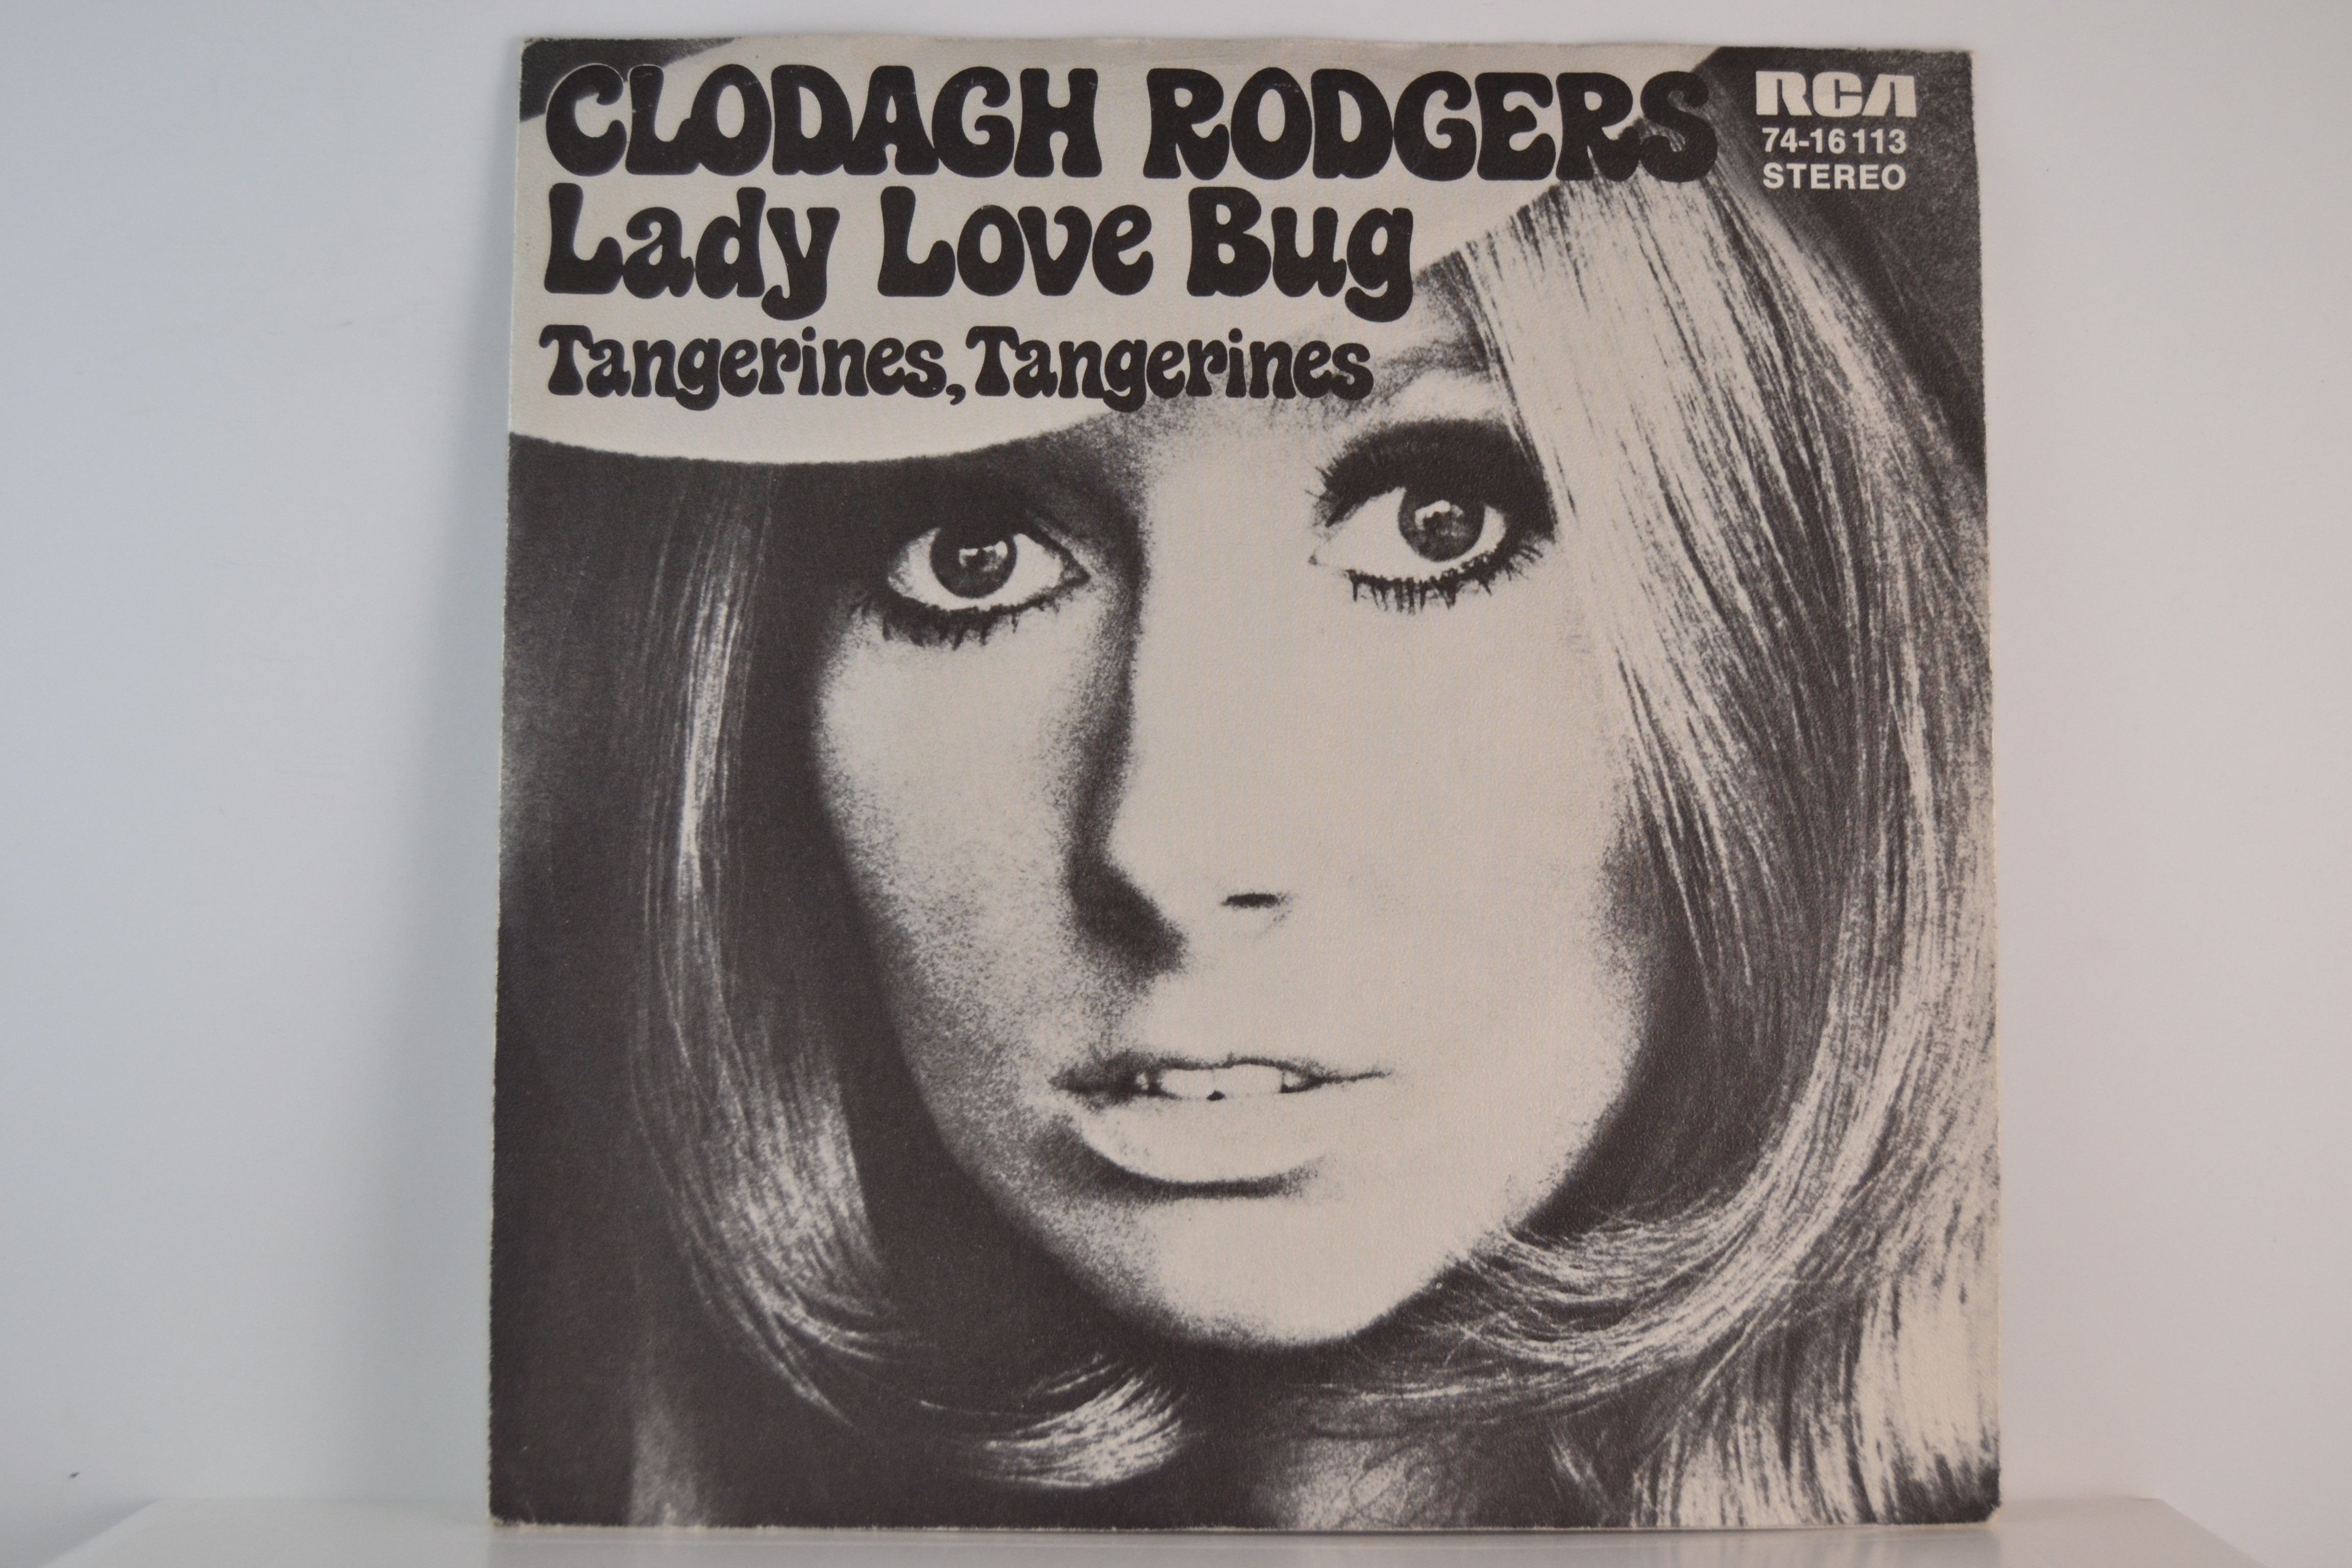 CLODAGH RODGERS : Lady love bug / Tangerines, tangerines